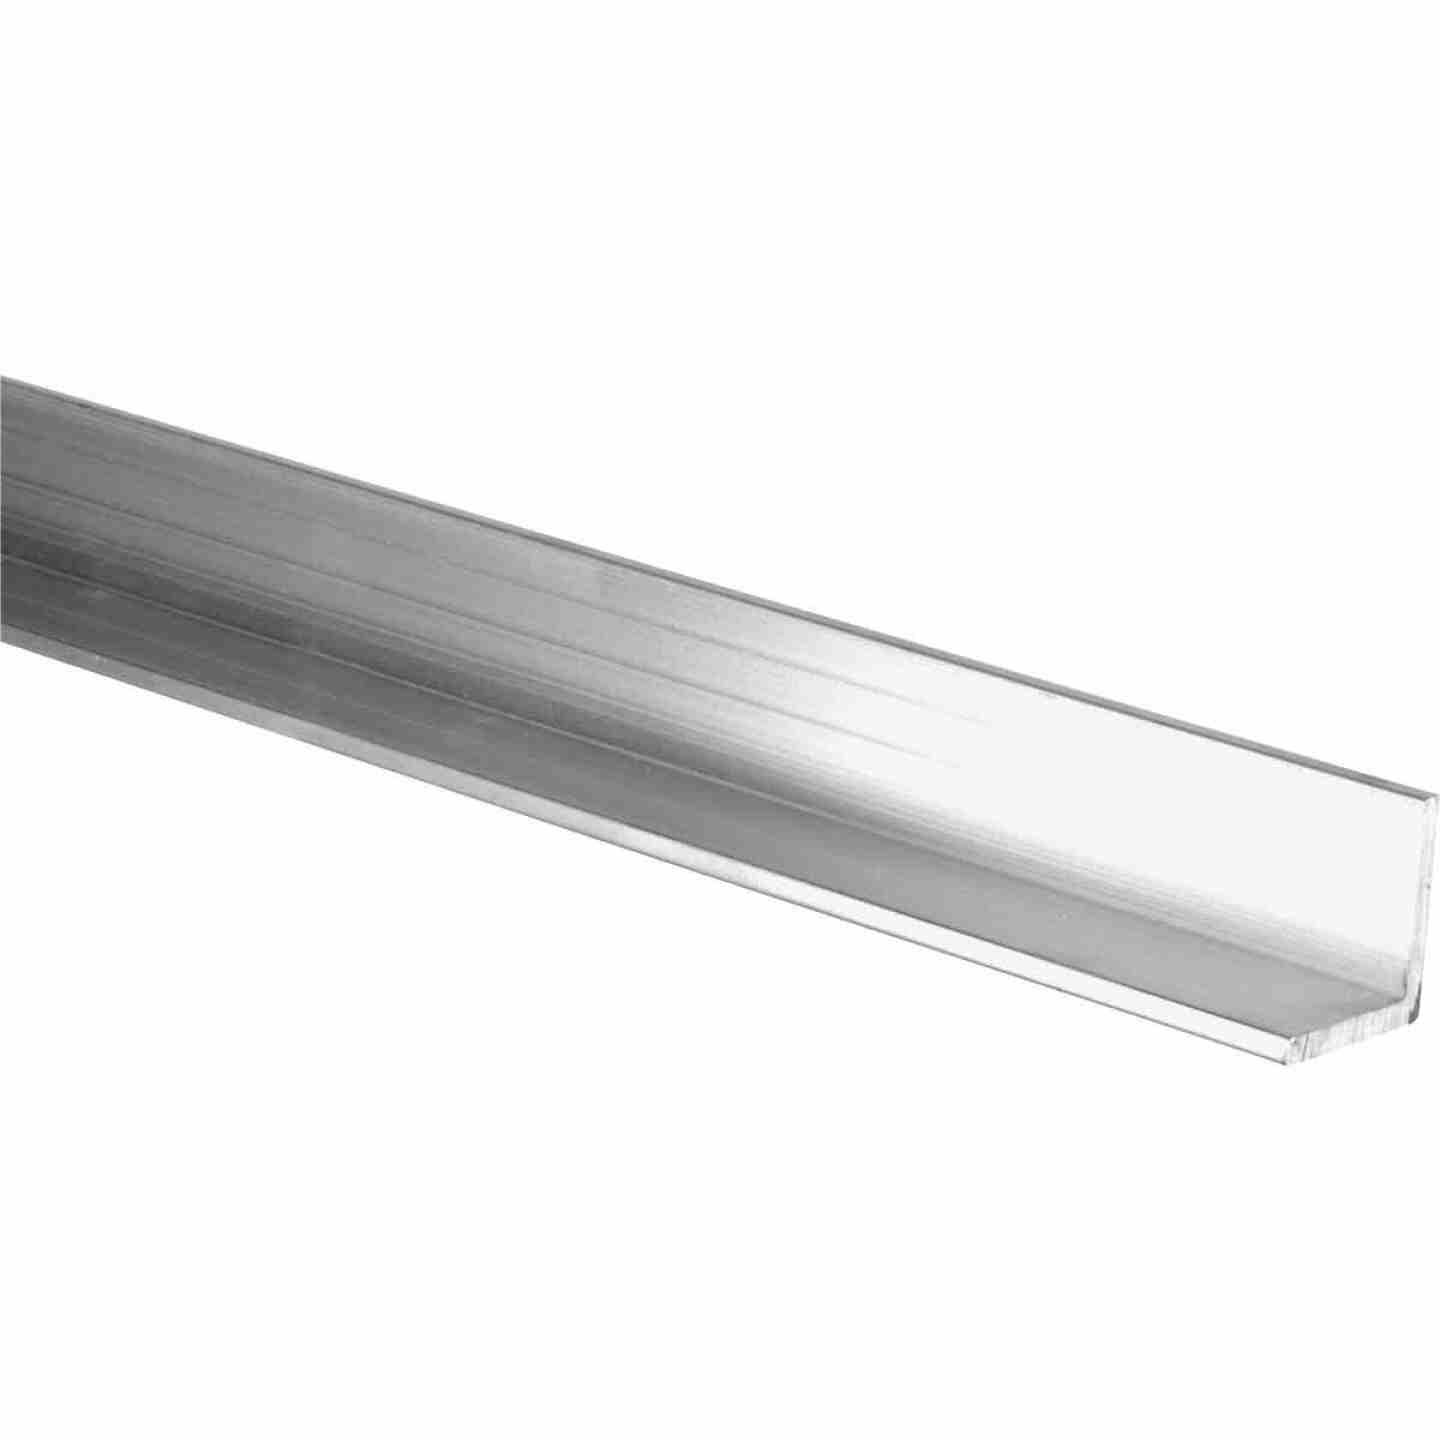 HILLMAN Steelworks Mill 3/4 In. x 3 Ft., 1/2 In. Aluminum Solid Angle Image 1